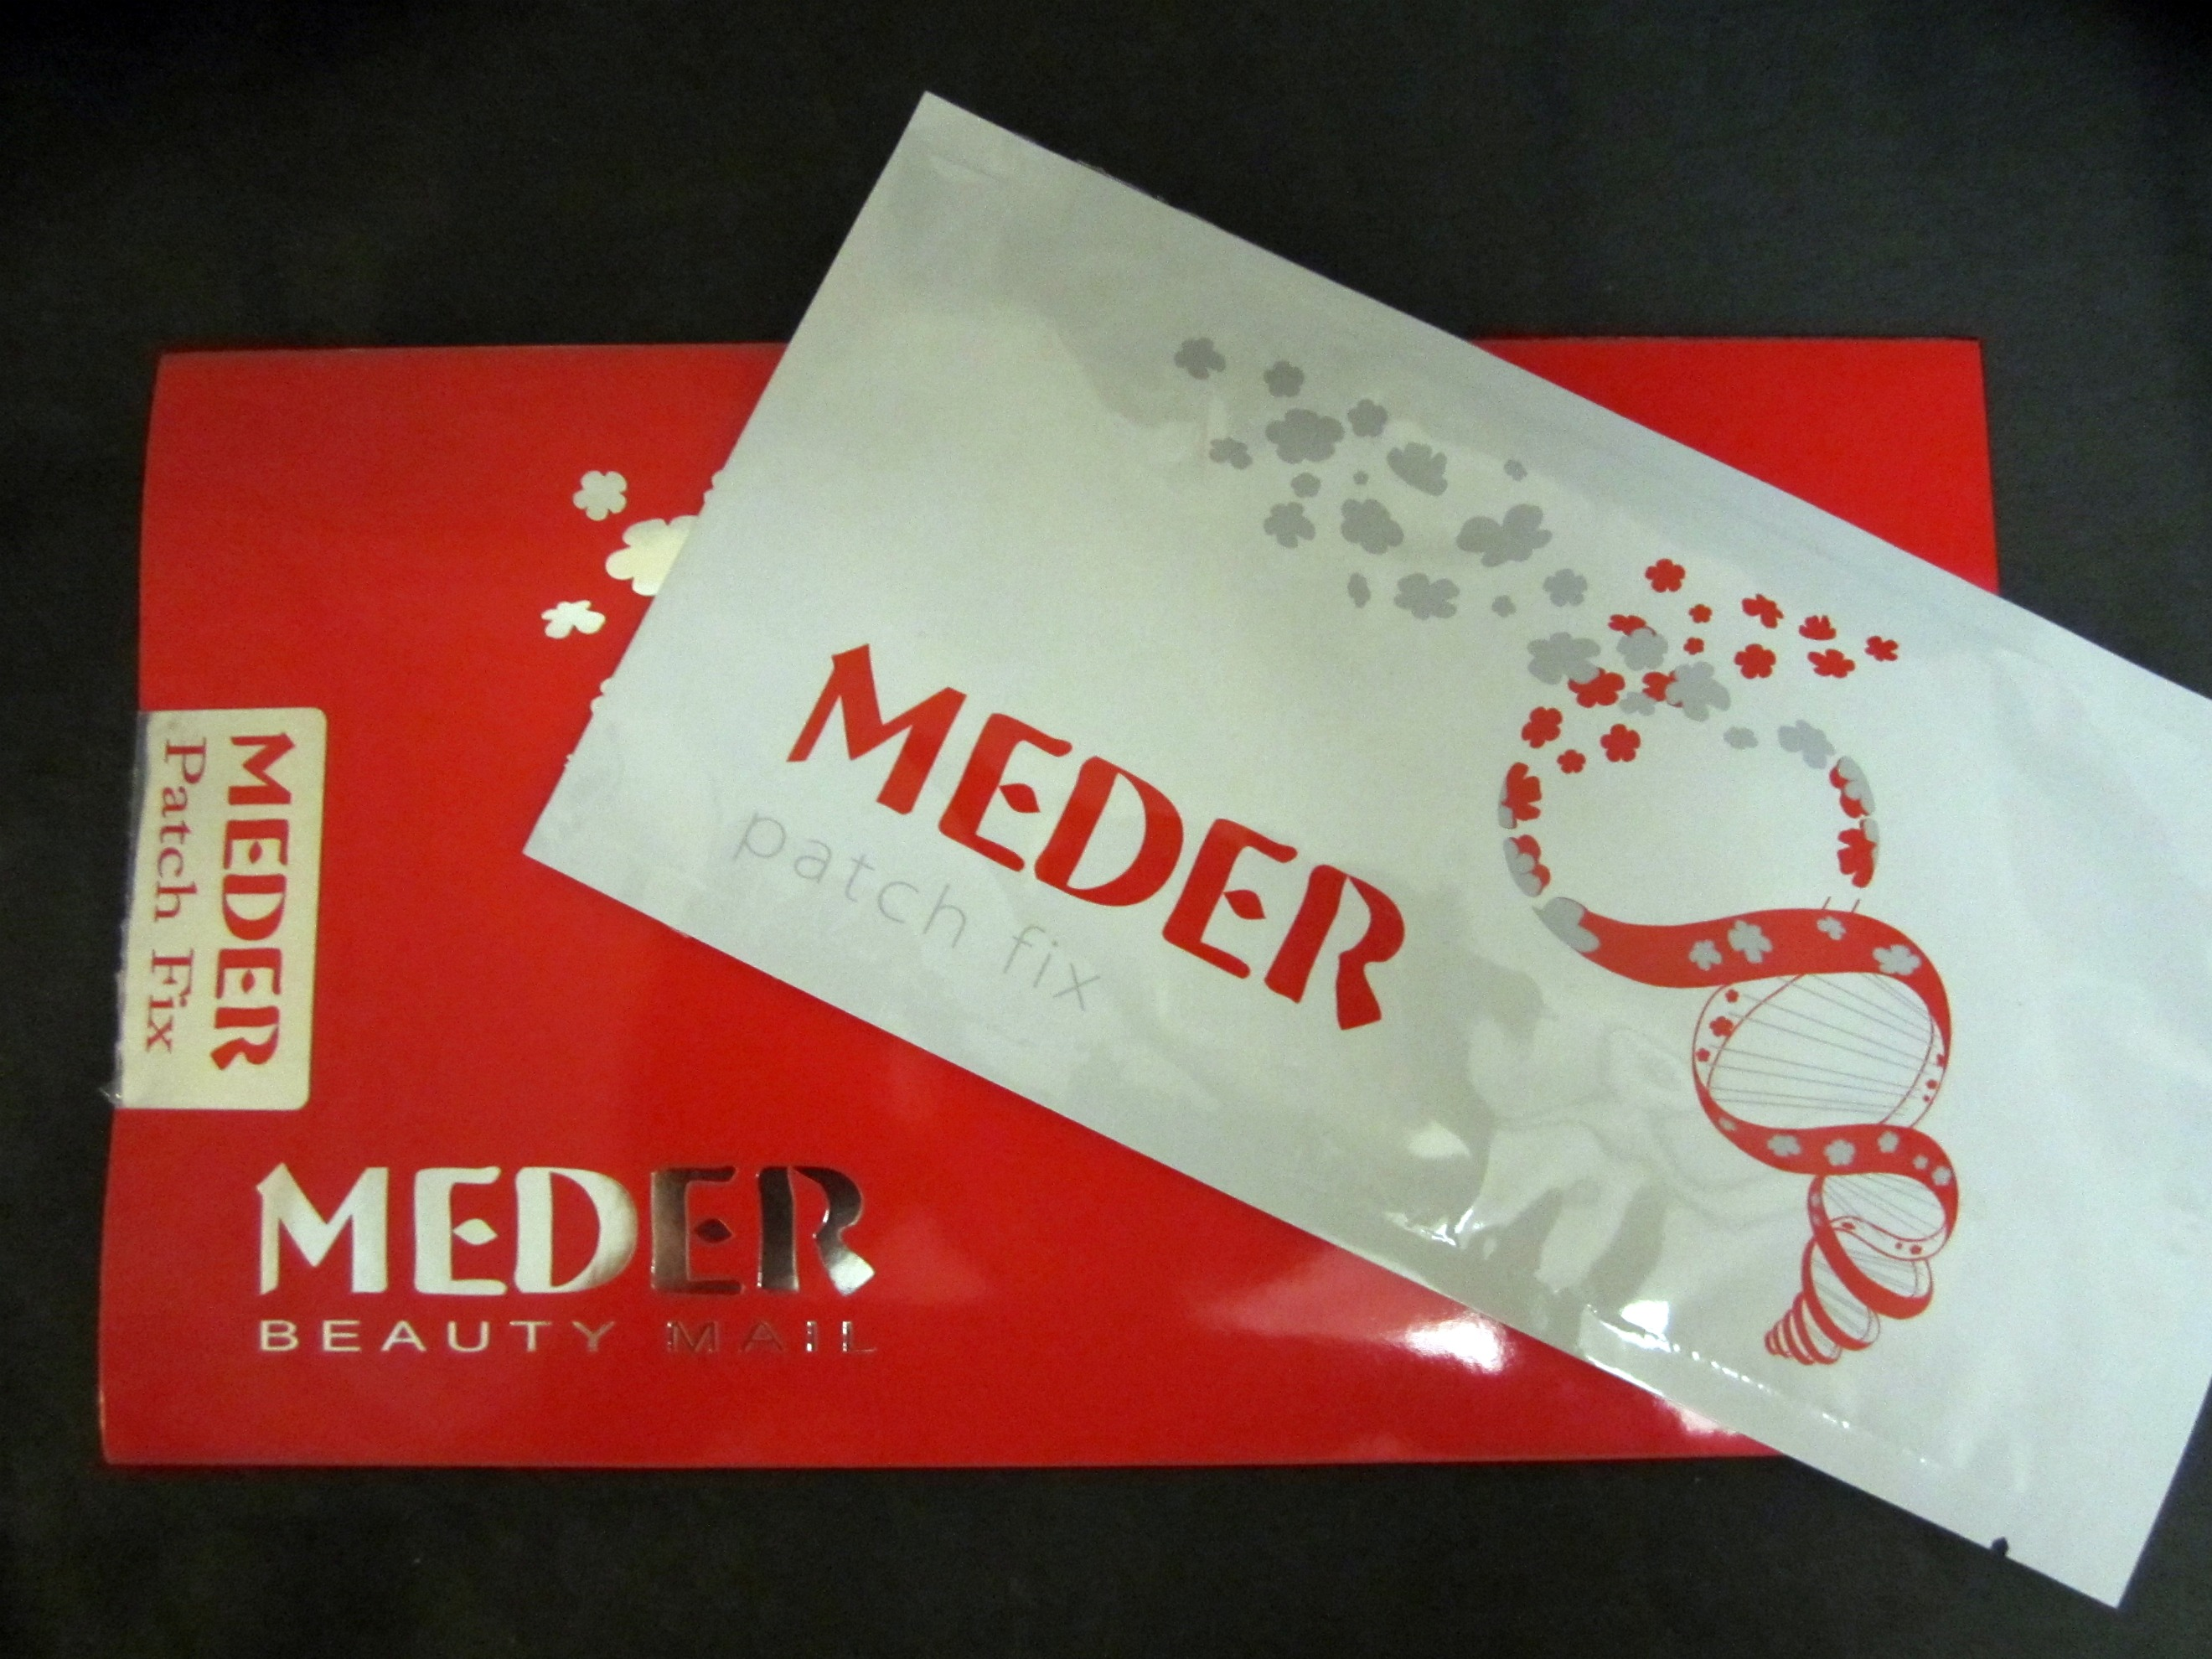 Meder Patch Fix (7)